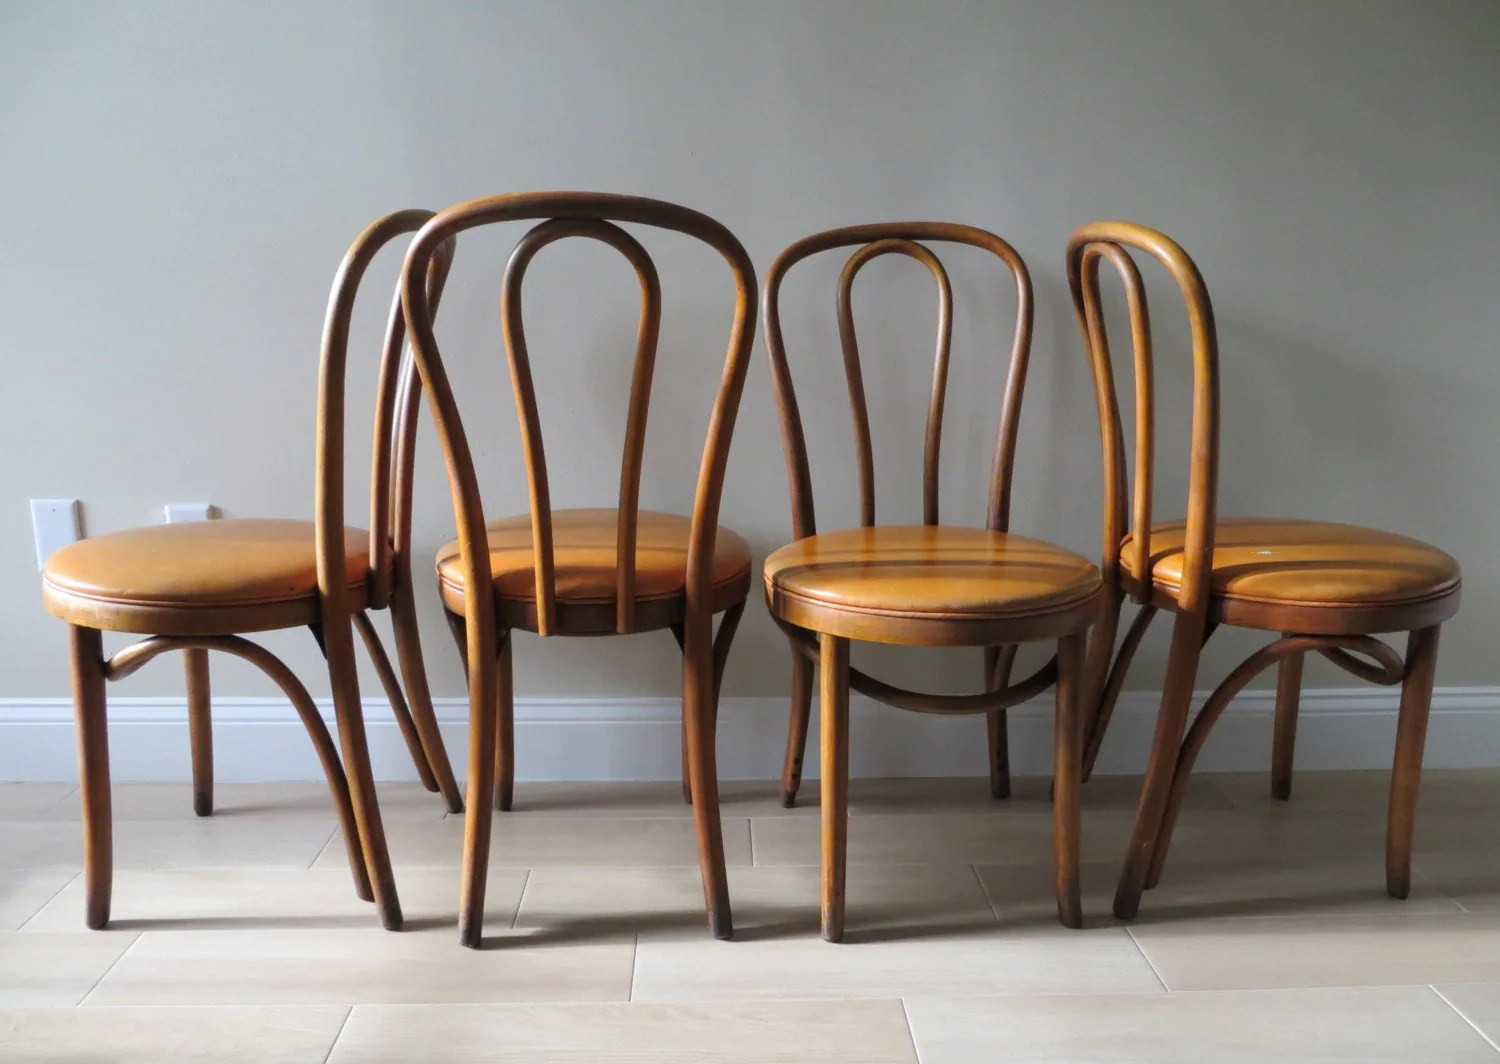 retro cafe dining chairs wood drafting chair vintage mid century bentwood thonet style bistro